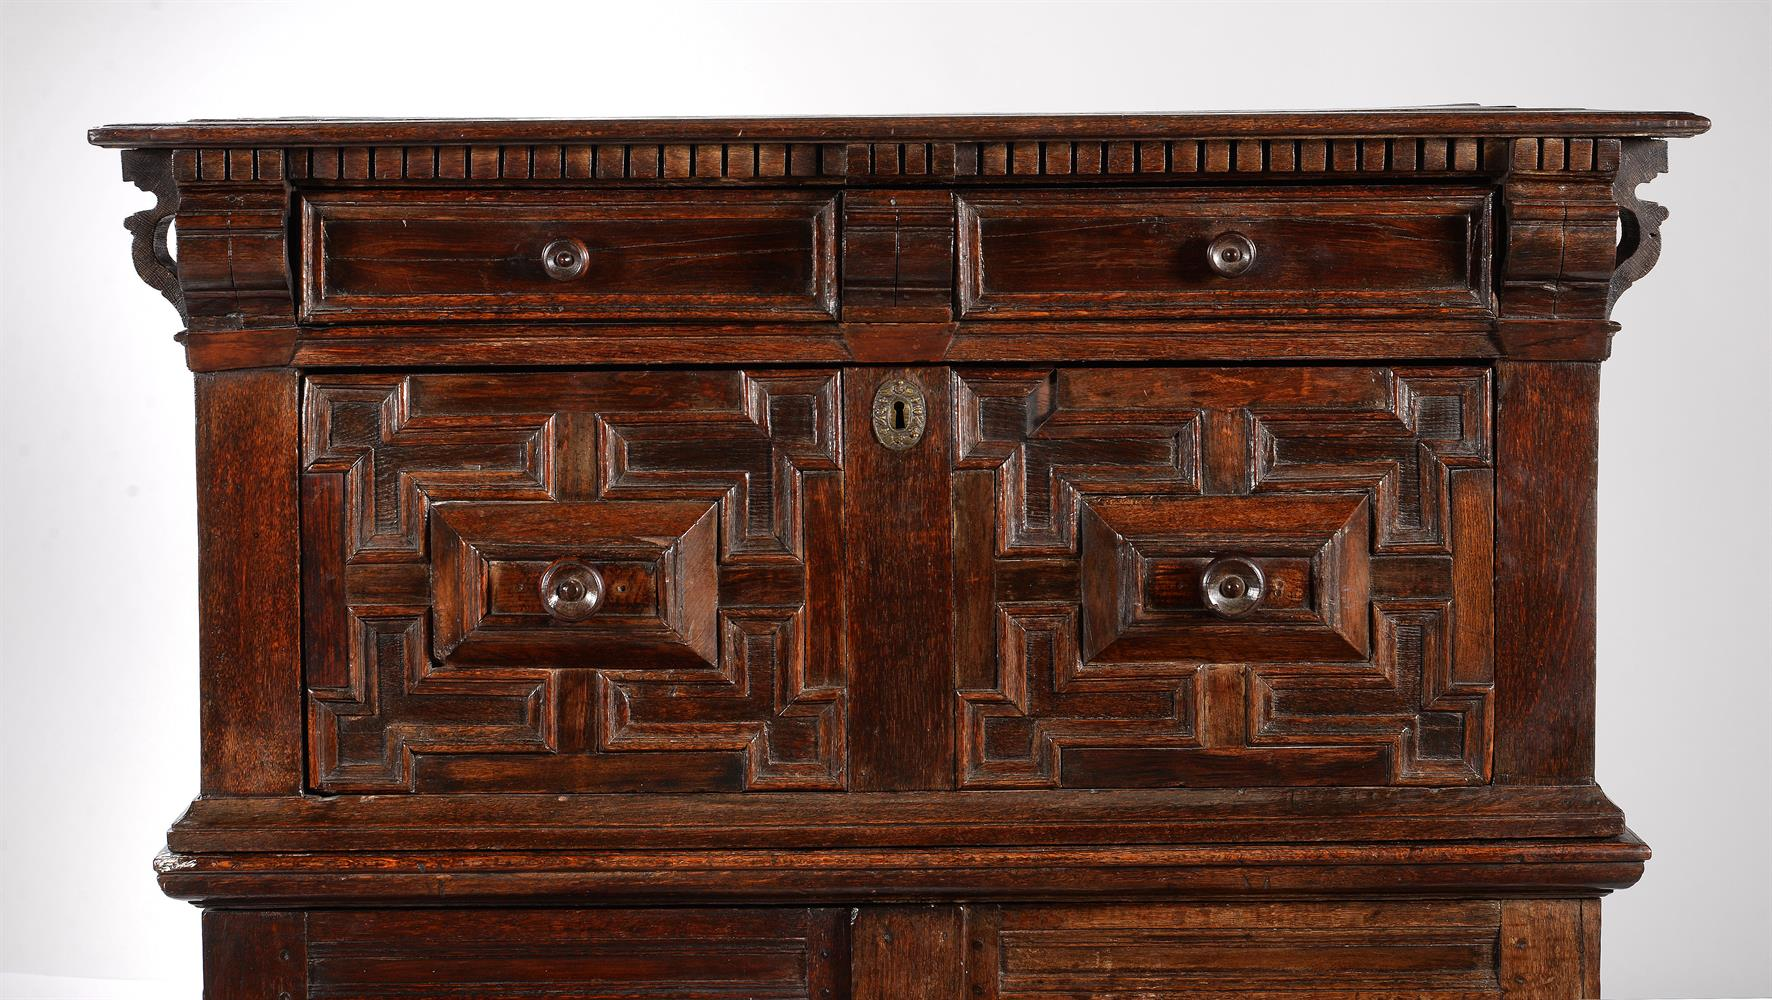 A CHARLES II OAK AND SNAKEWOOD CHEST OF DRAWERS, CIRCA 1680 - Image 2 of 2